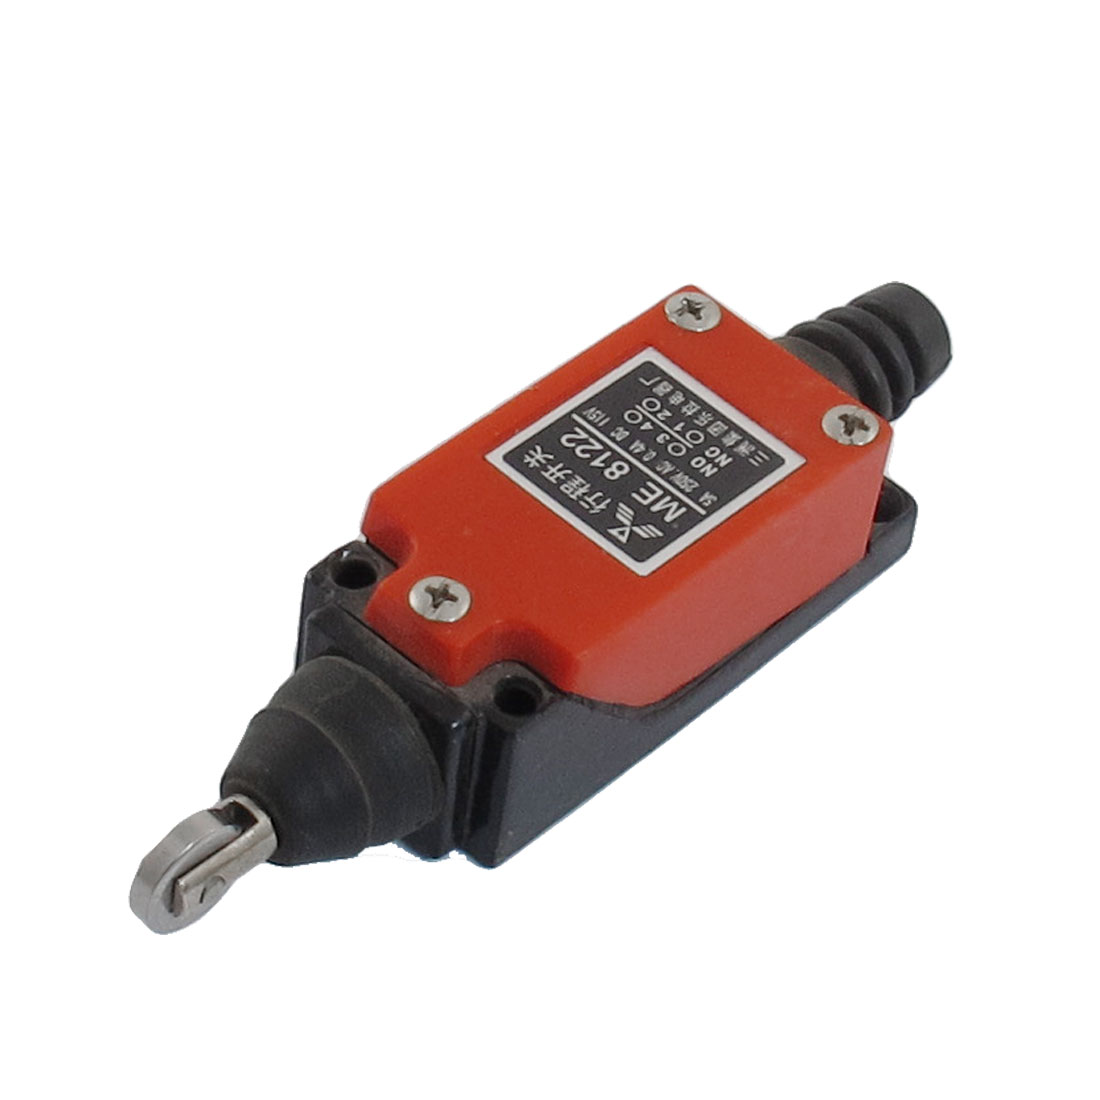 0.4A 1150VDC 5A 250VAC 1NO 1NC SPDT Momentary Cross Roller Plunger Limit Switch